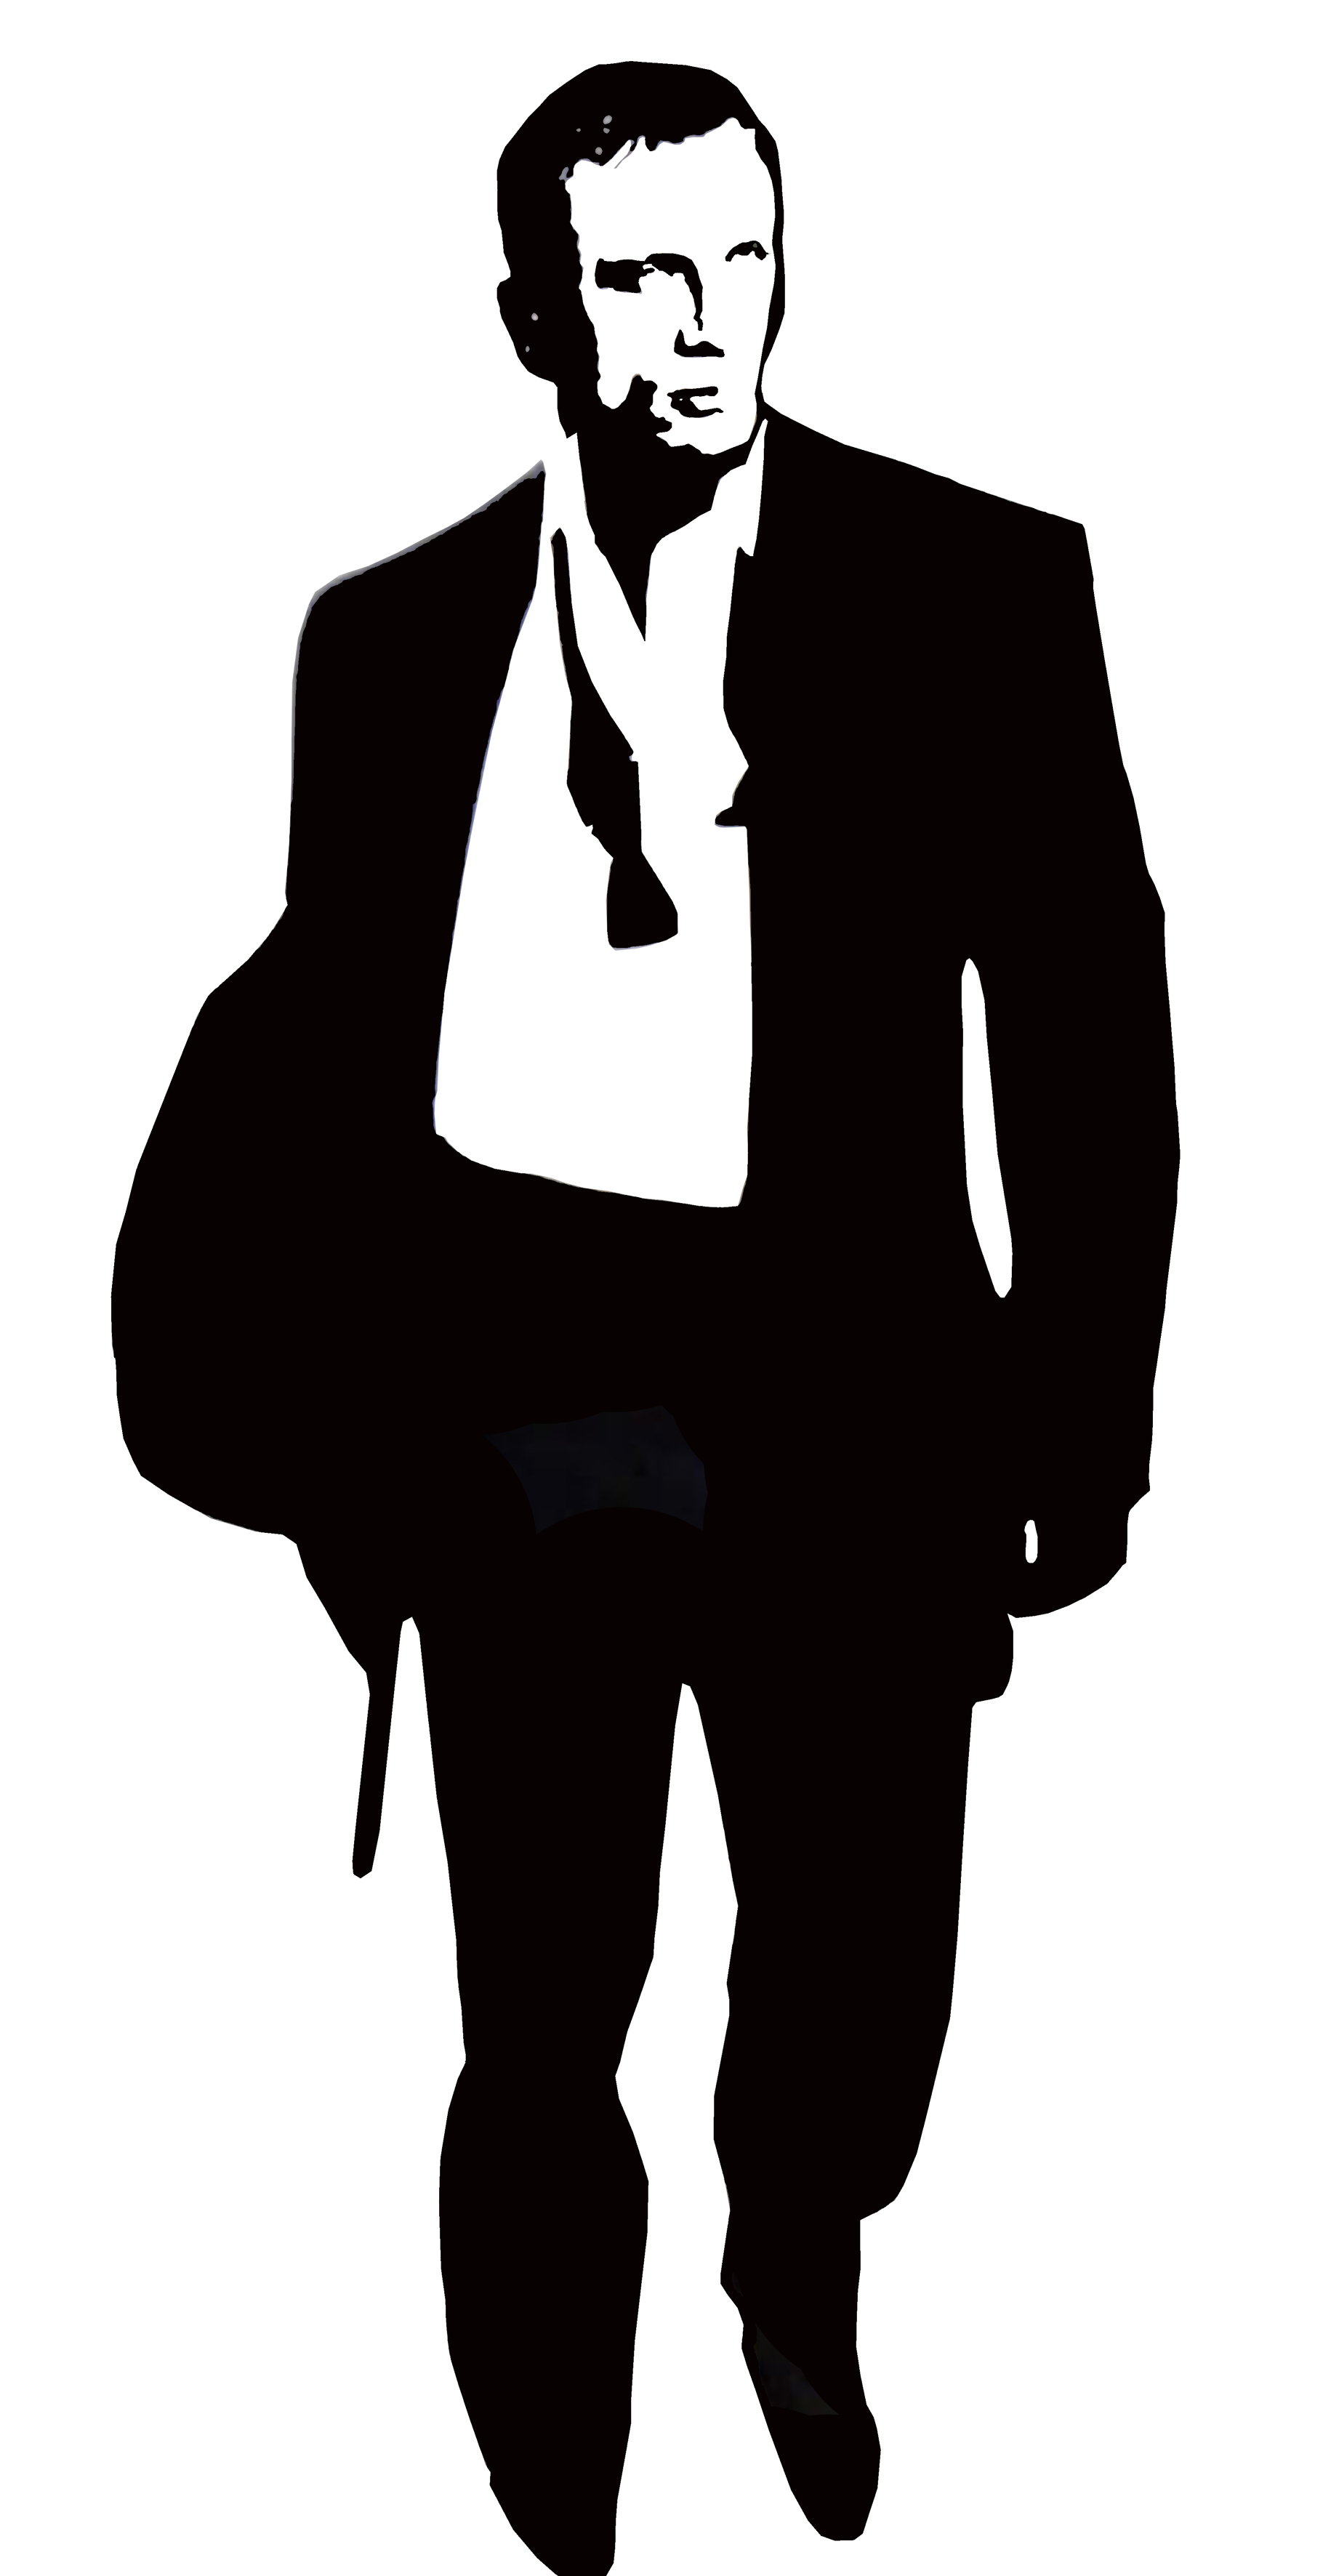 James bond daniel craig clipart.